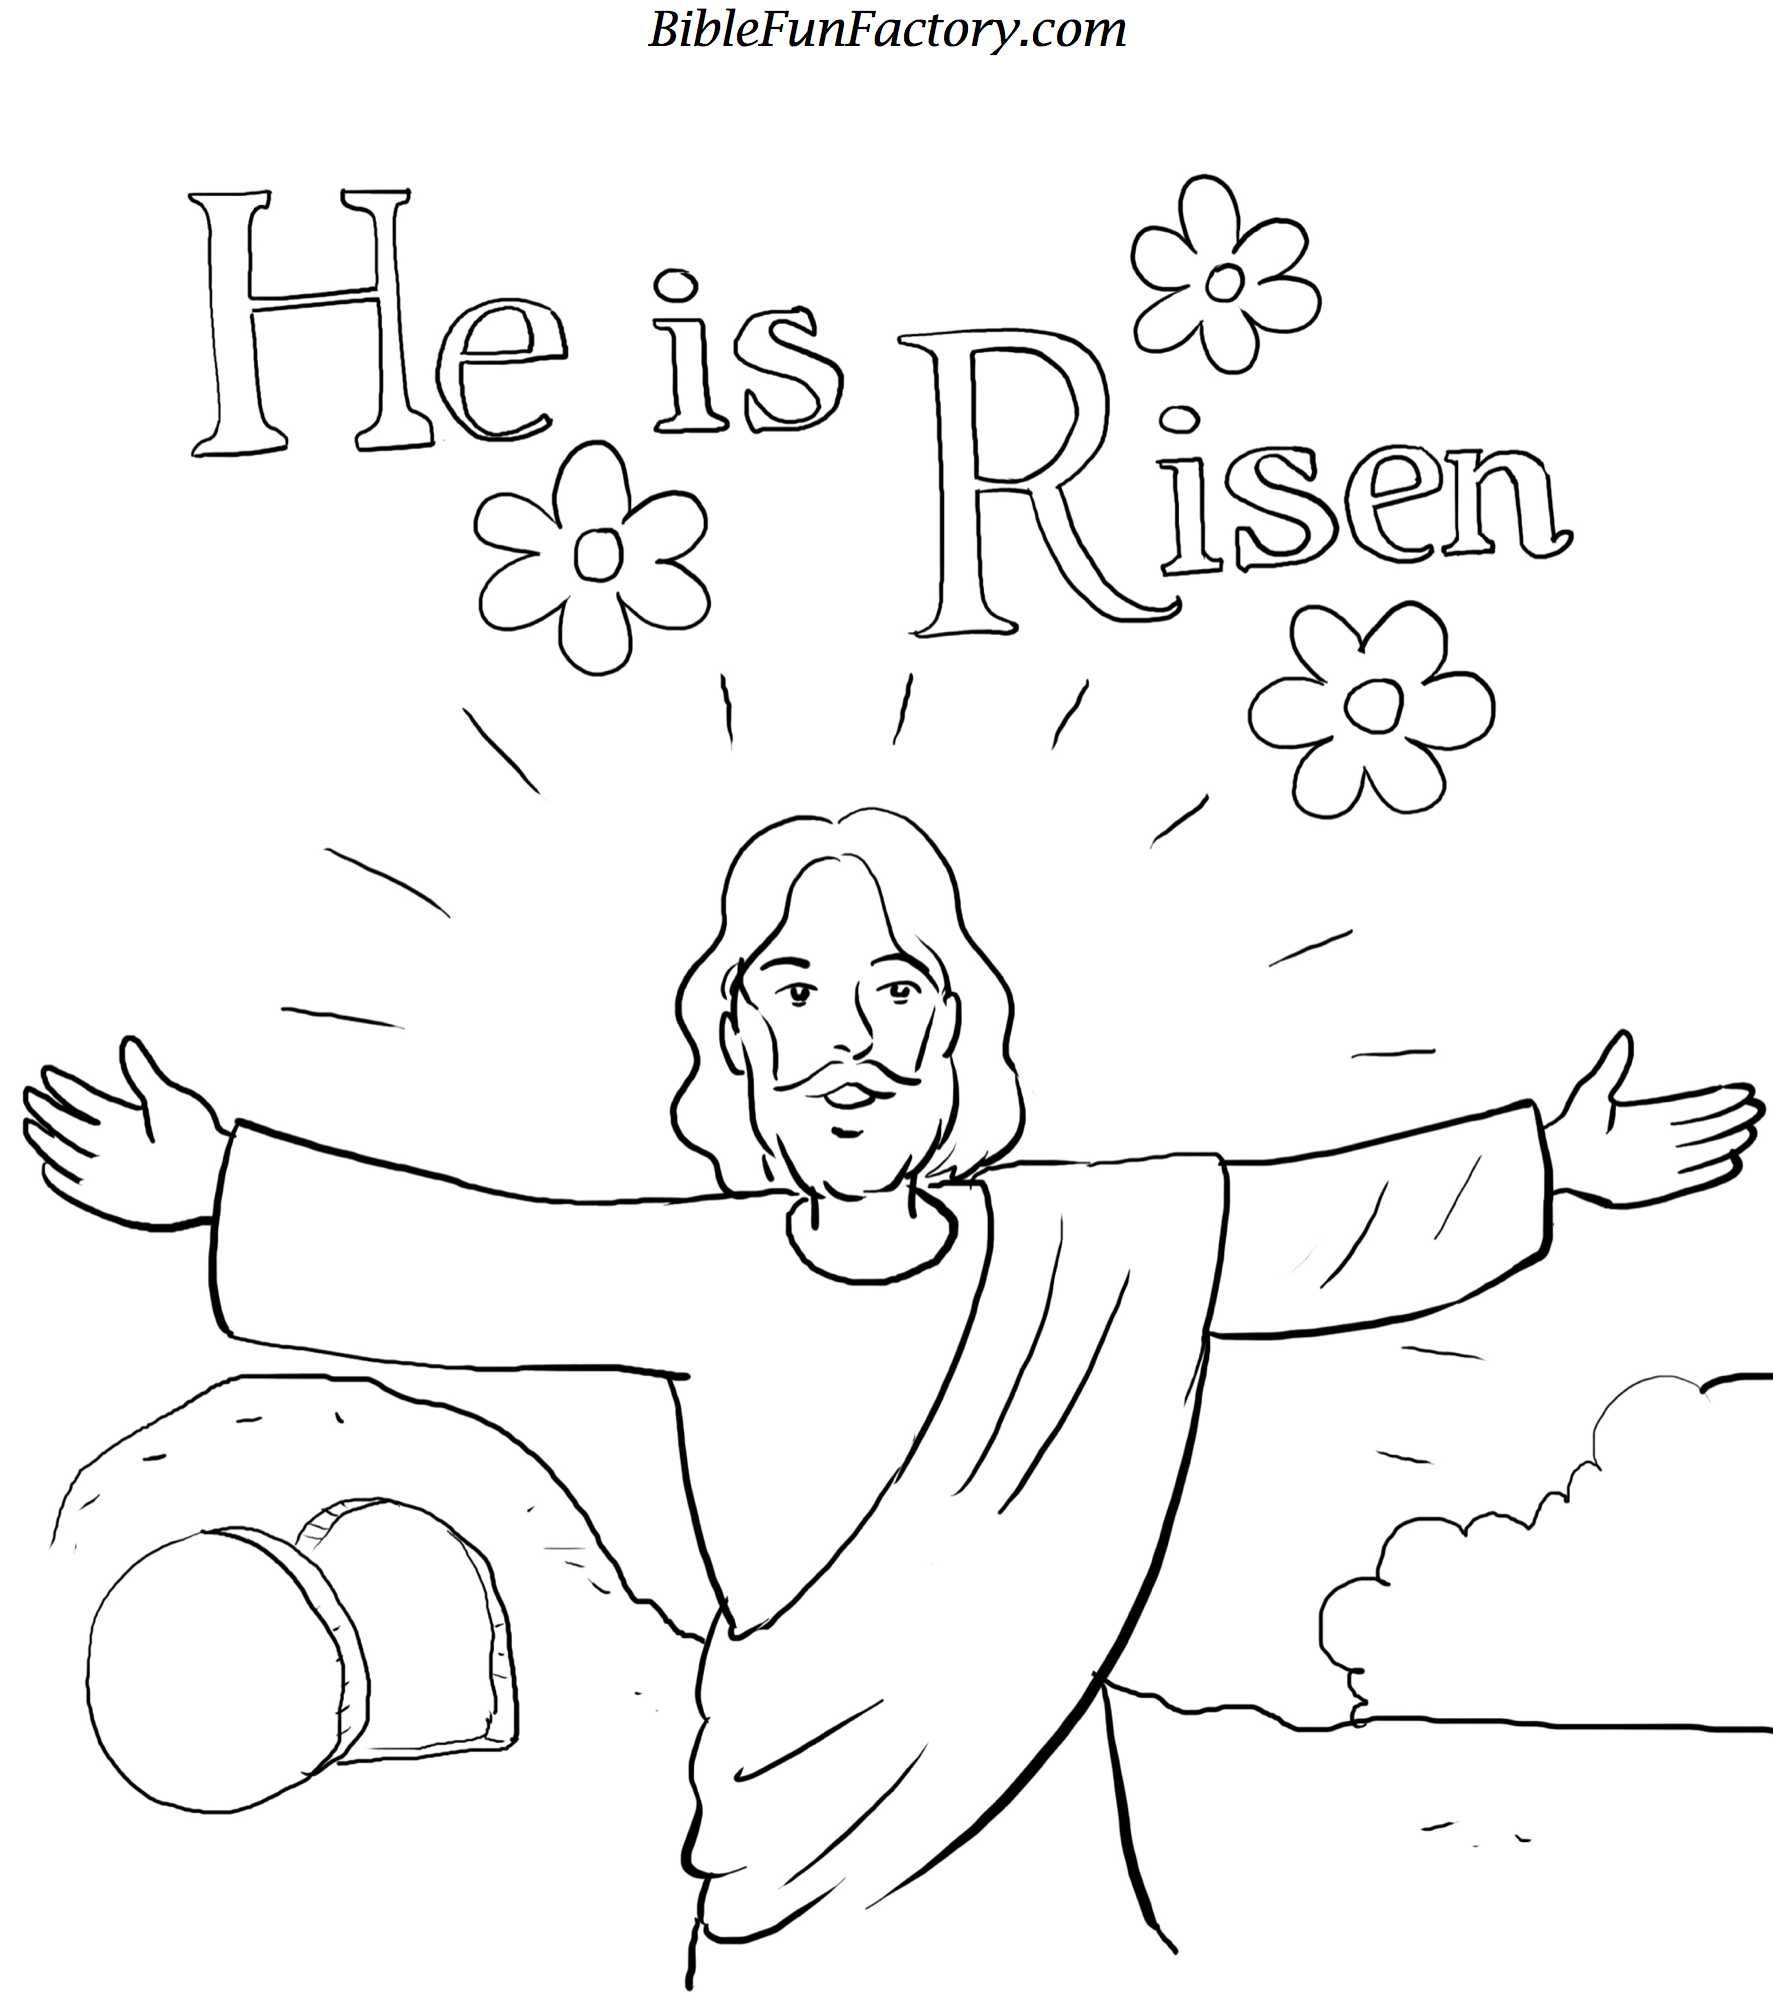 Coloring pages bible stories preschoolers - Resurrection Coloring Pages Free Easter Coloring Sheet